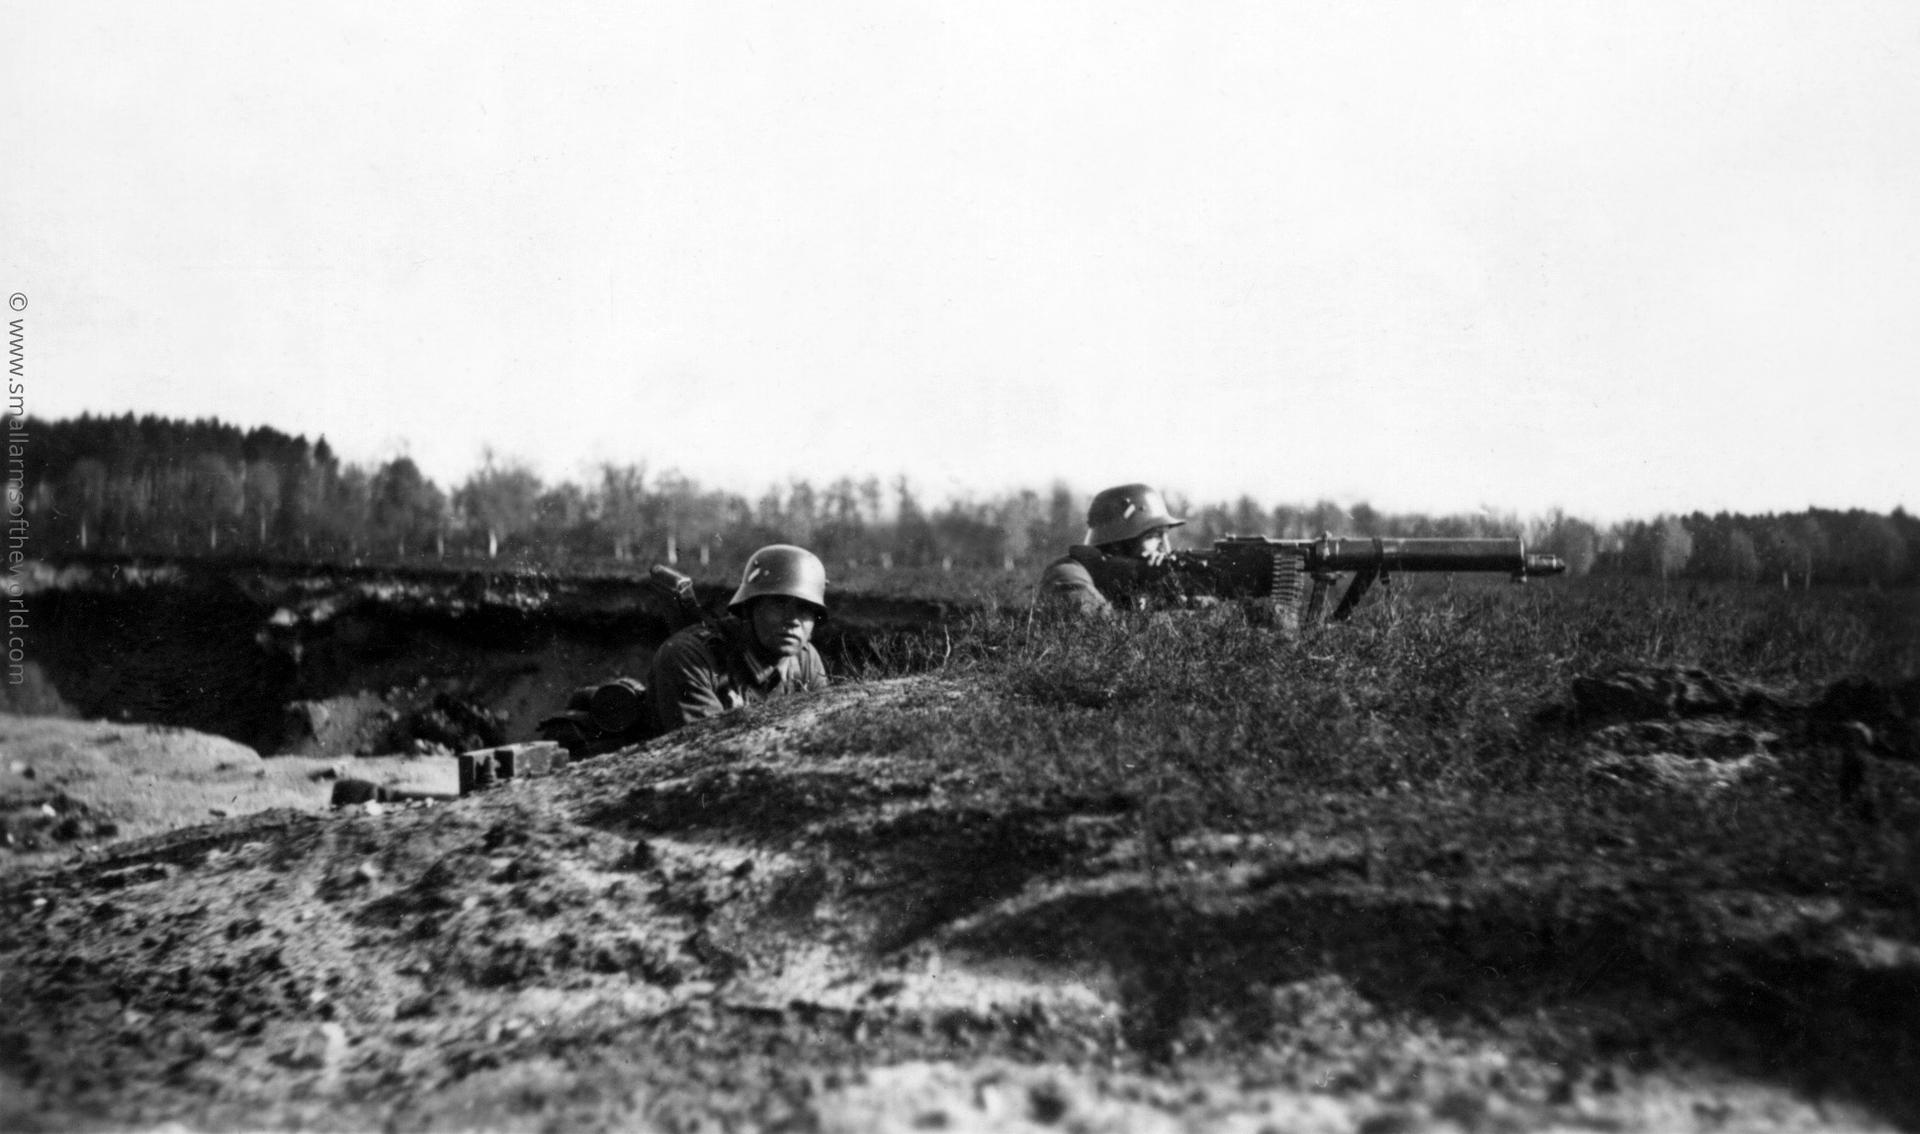 Photograph showing German gun crew firing a Maxim MG 08/15 light machine gun